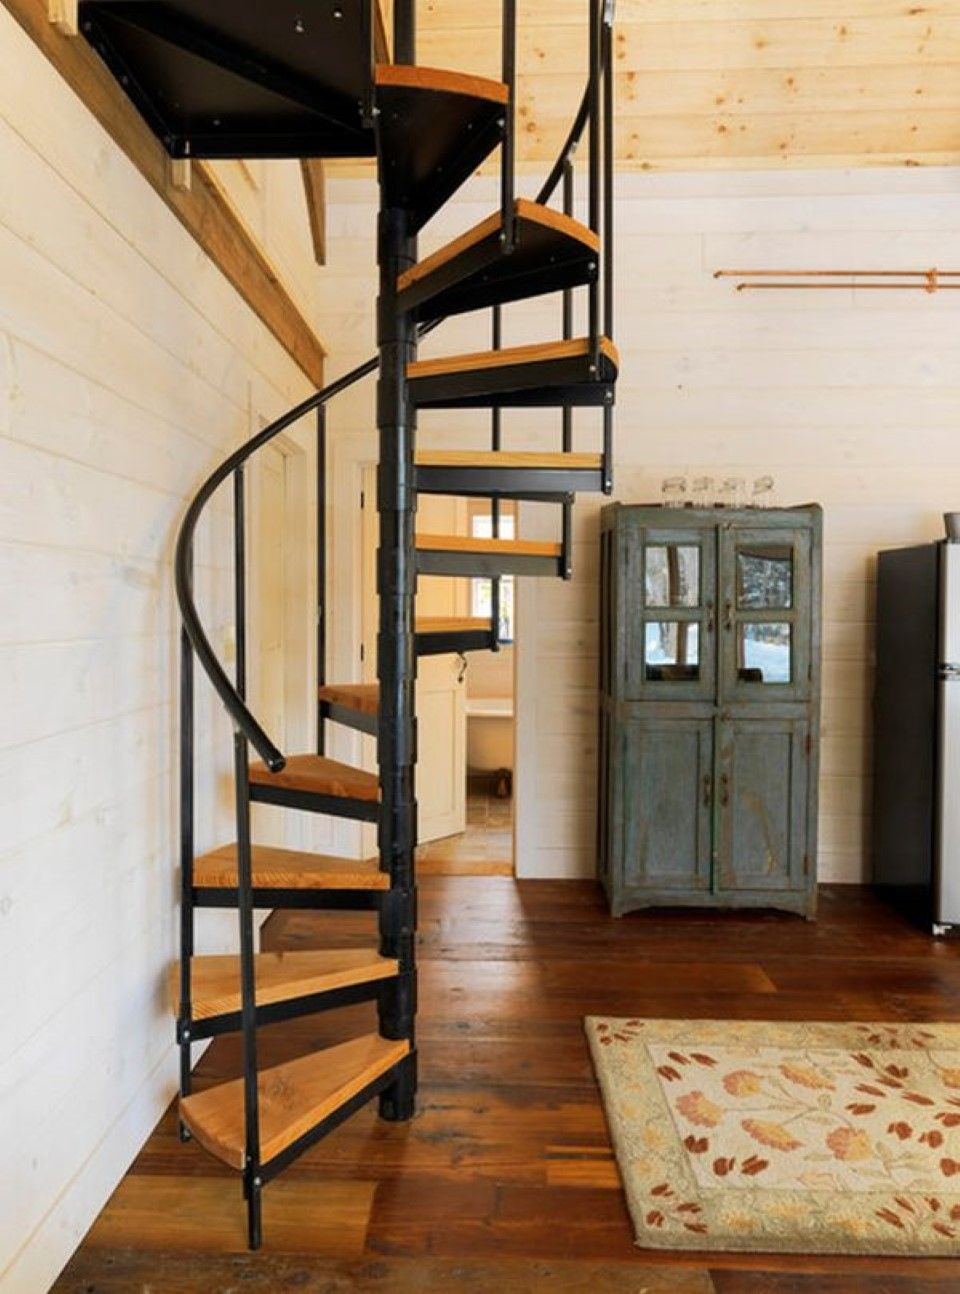 tiny house stairs tiny homes large living pinterest wood circular staircase plans dark wooden floor idea and fancy area rug with amazing circular spiral staircase plan feat glass cupboard door design